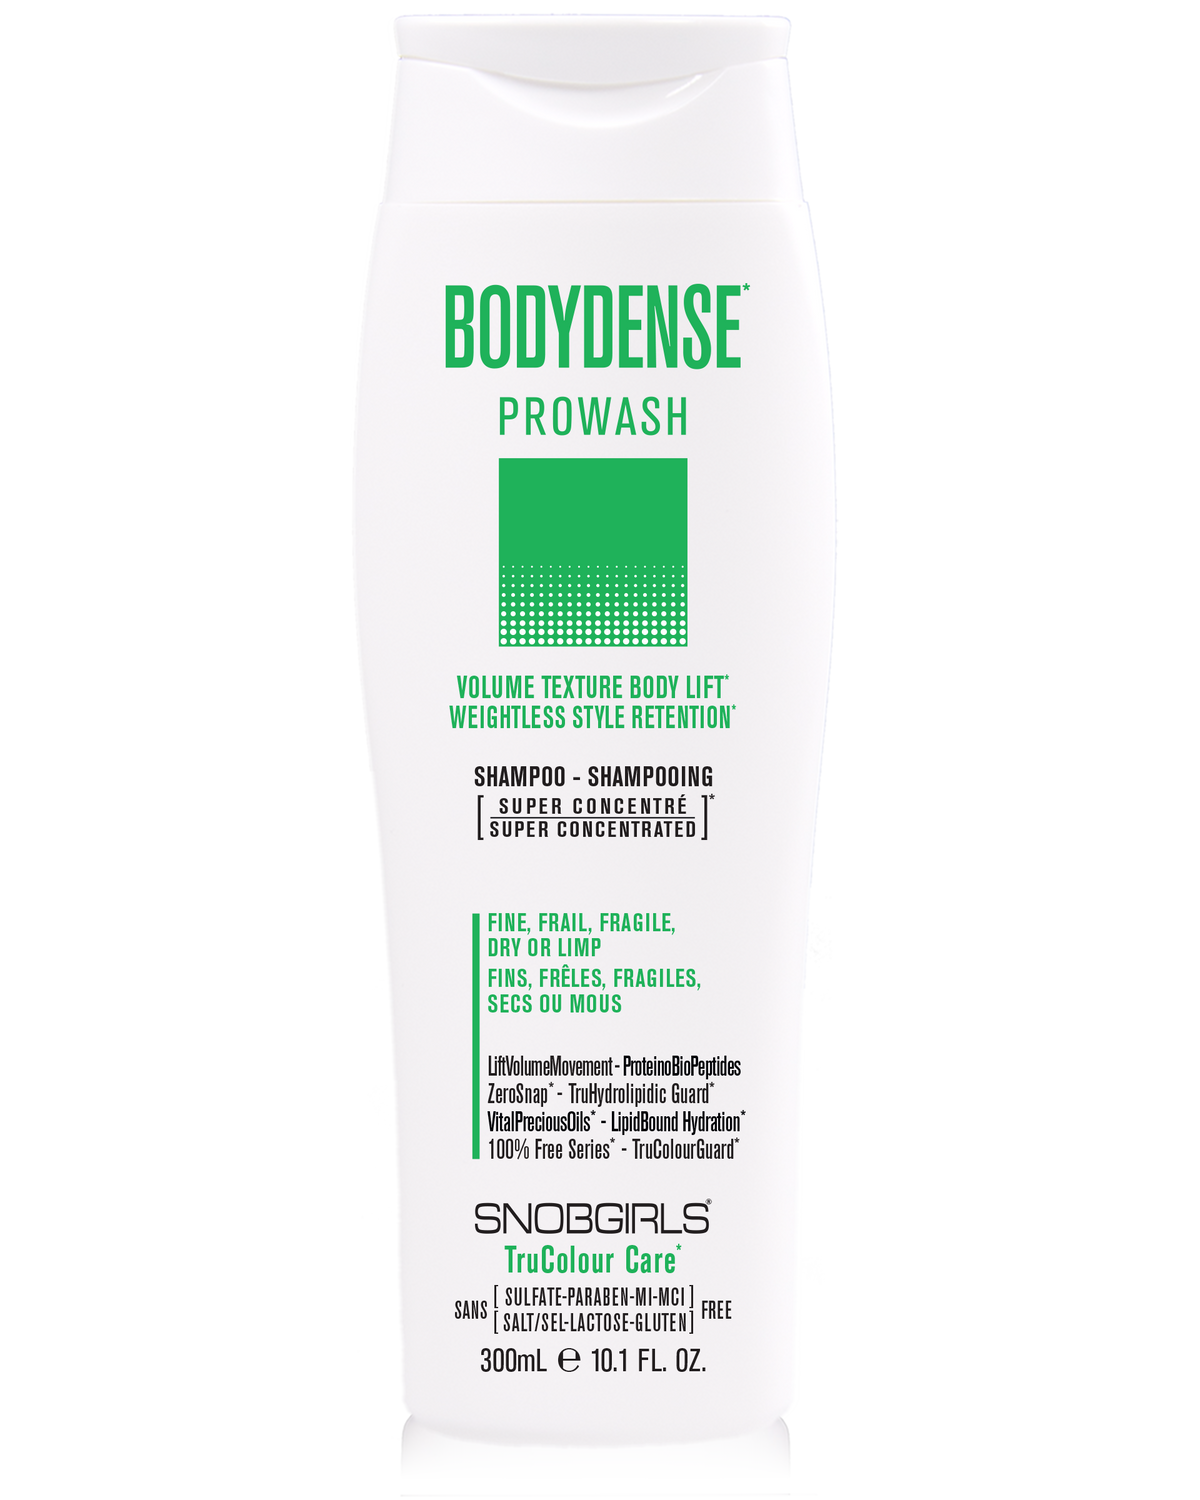 GIFT SETS- 6 X Trio BODYDENSE Volume Texture Body Lift Weightless Style Retention + Duo Liters - SNOBGIRLS.com